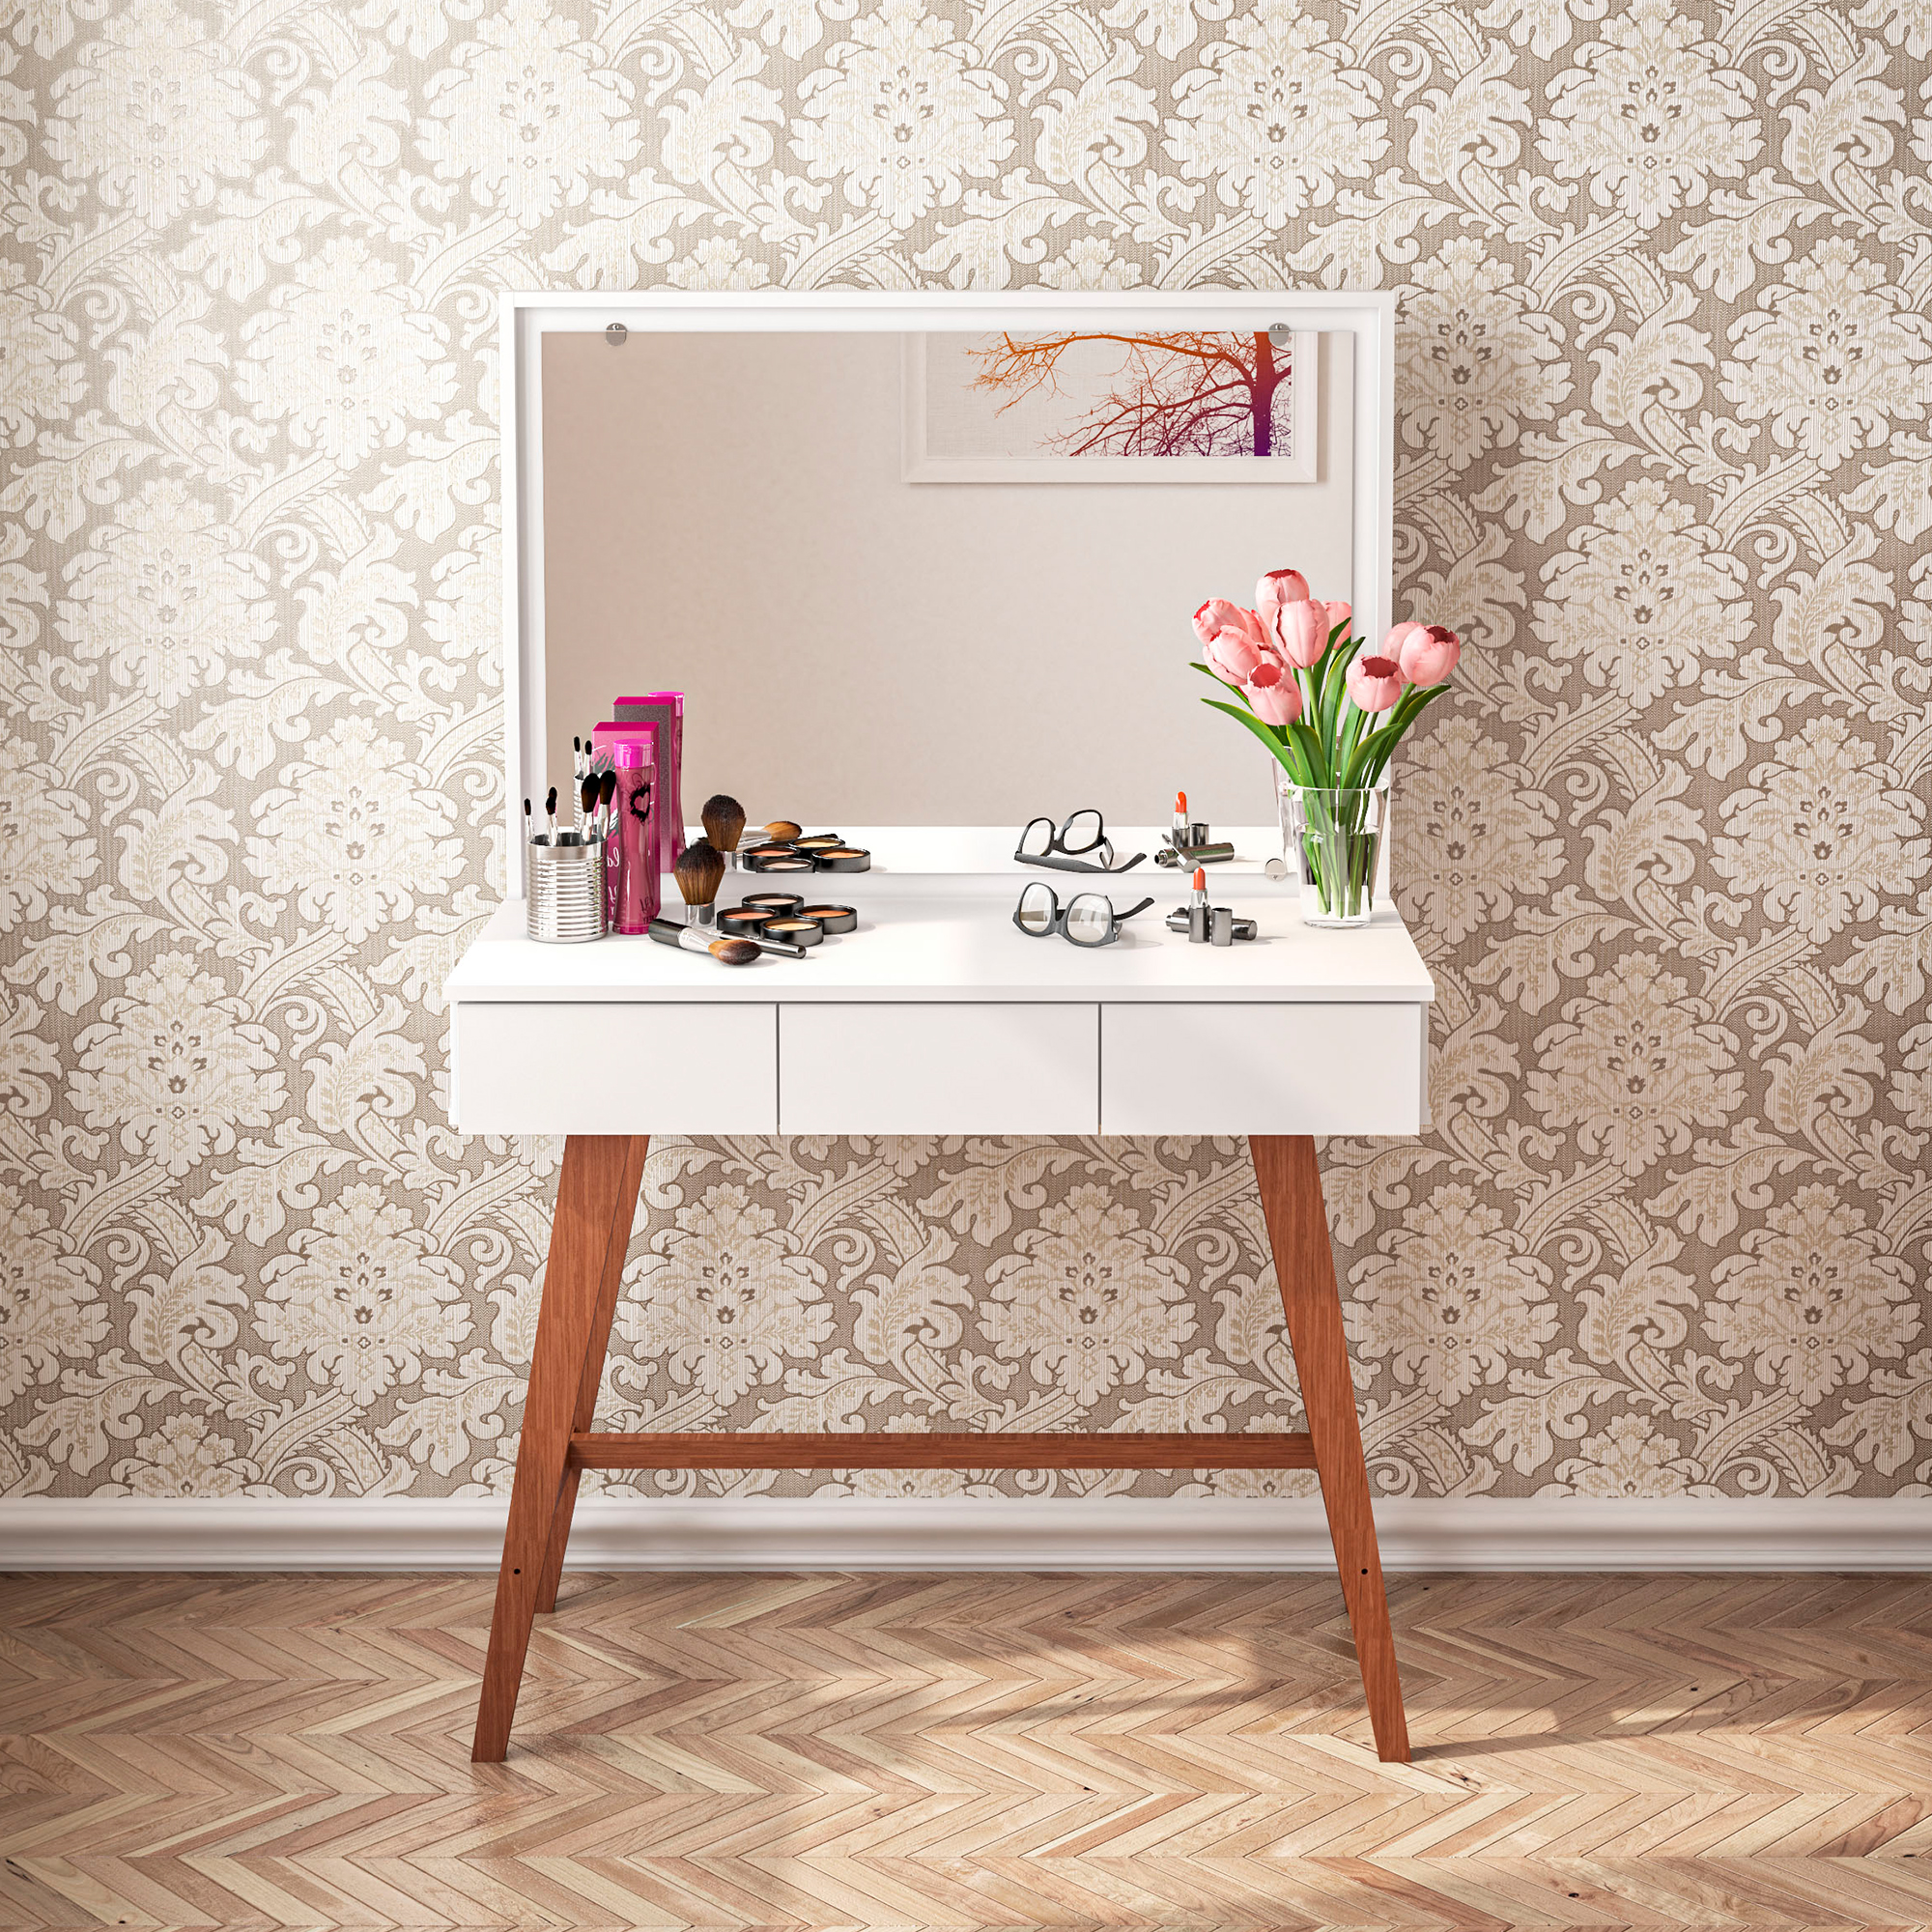 Boahaus Urban Modern Vanity Table with Mirror, 3 Drawers, and Solid Wood Legs, White Finish (Walmart)